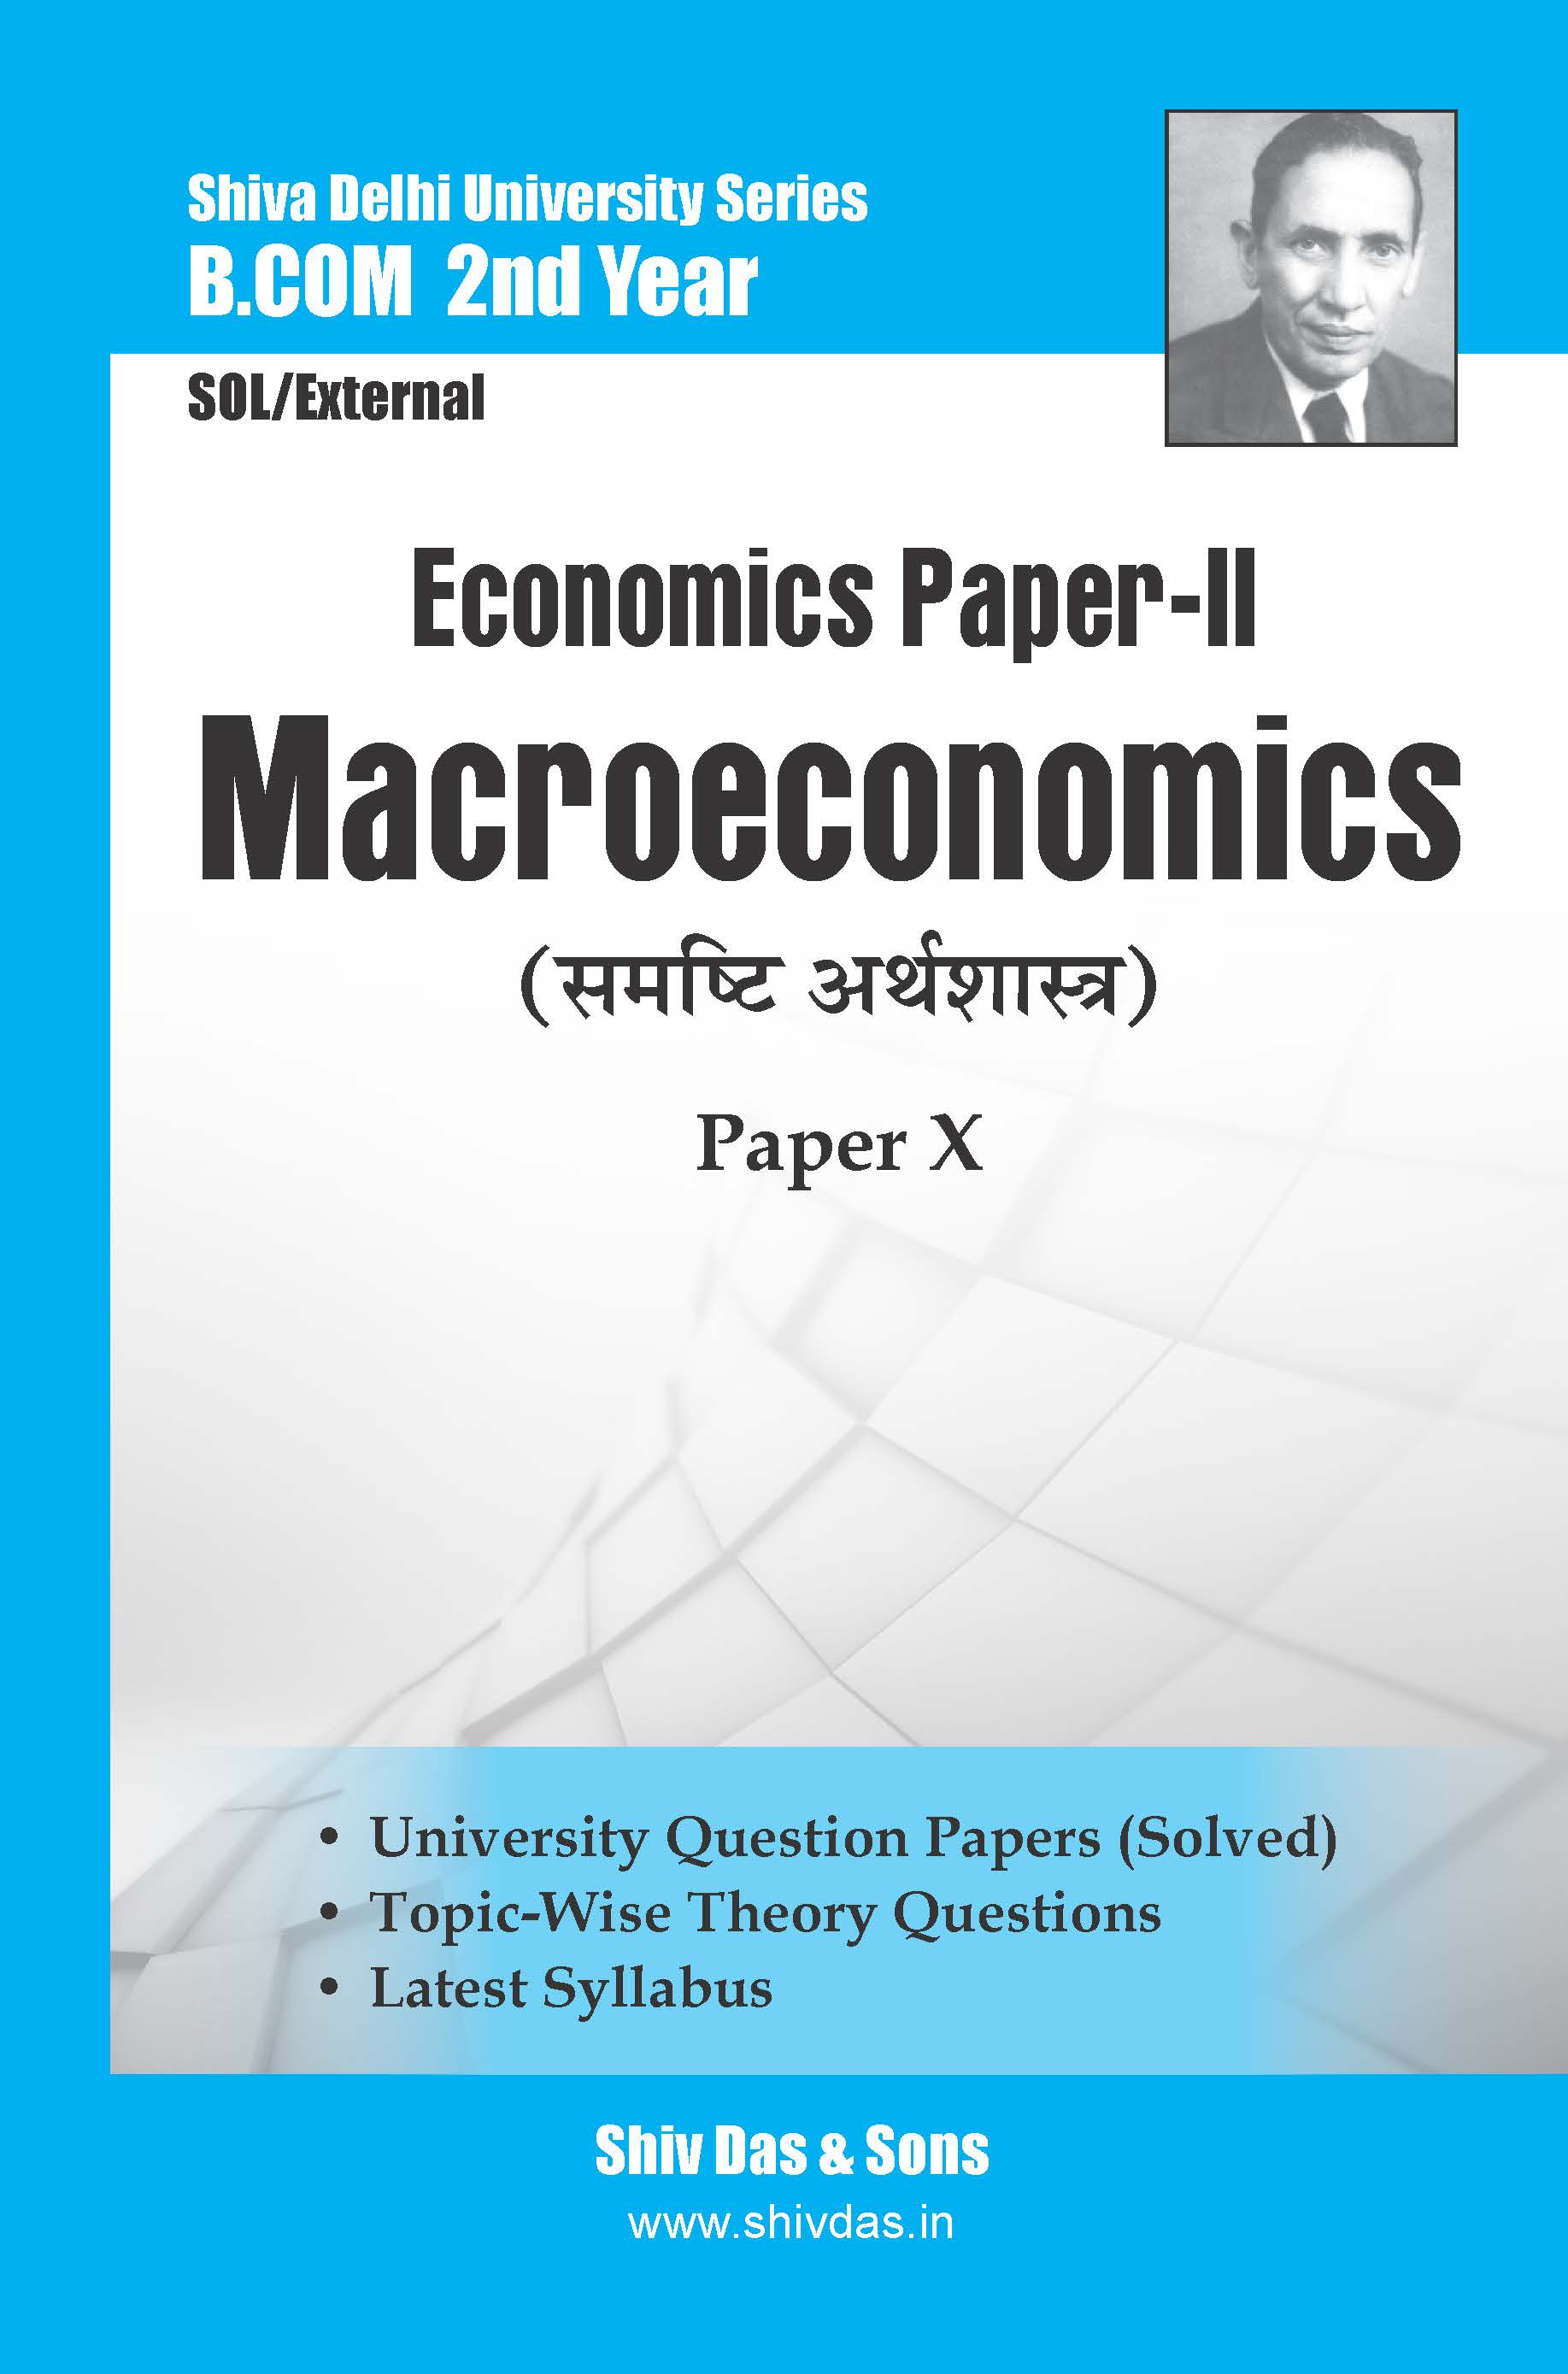 B.Com-2nd Year-SOL/External-Macroeconomics (Hindi Medium)-Shiv Das-Delhi University Series